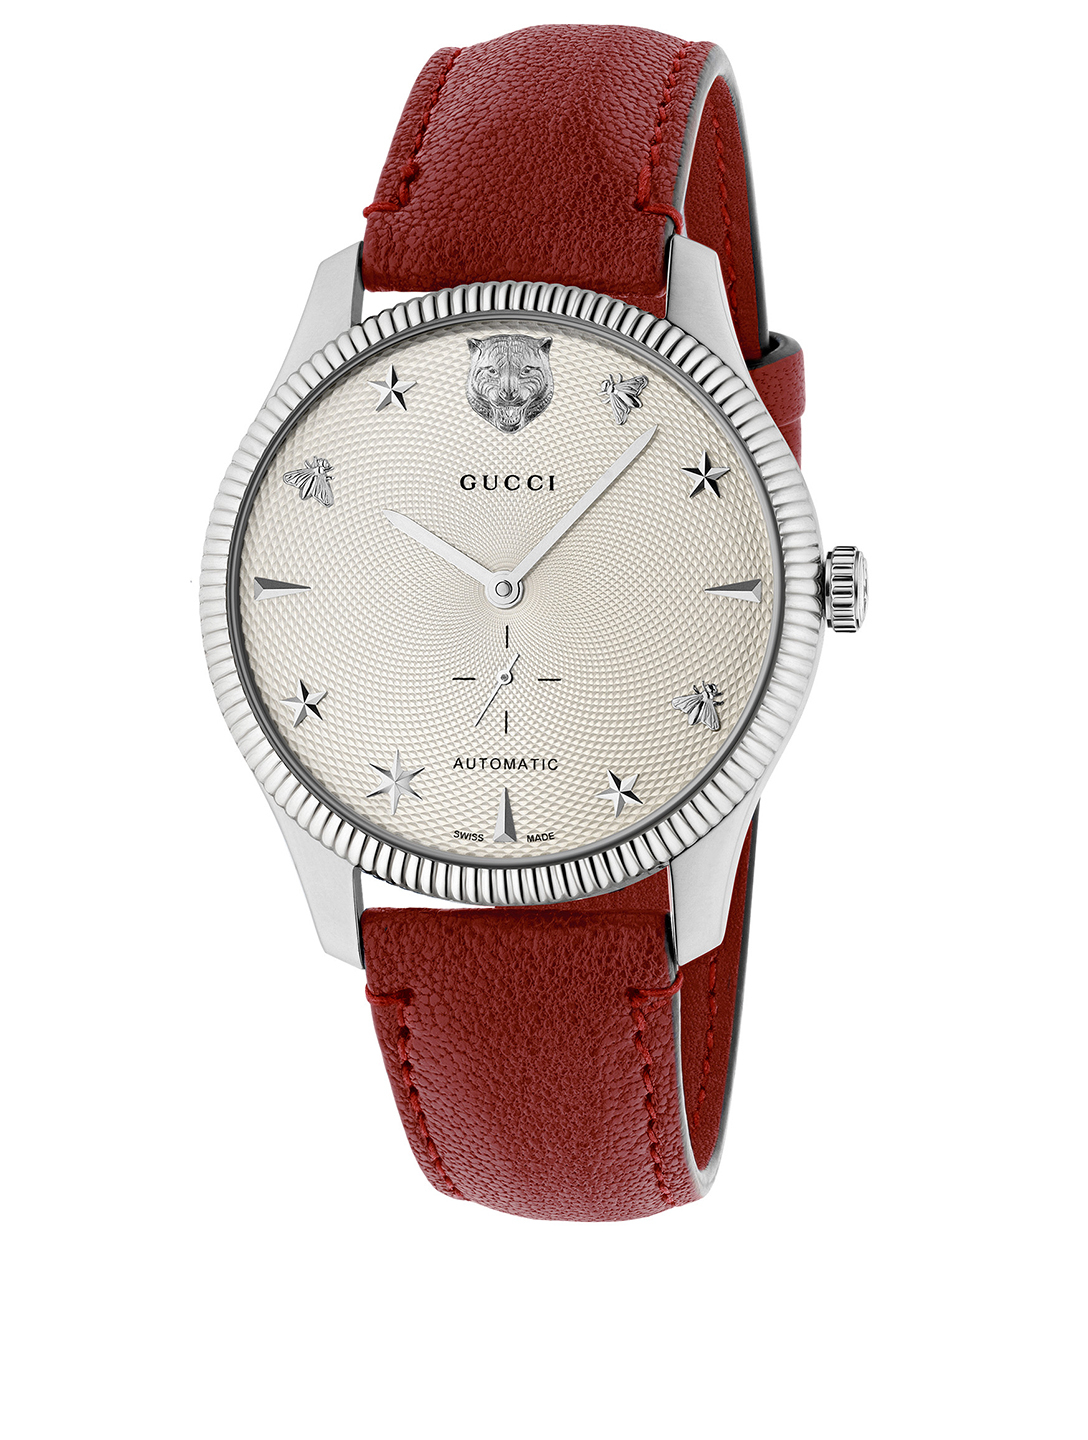 GUCCI G-Timeless Leather Strap Watch Women's Metallic